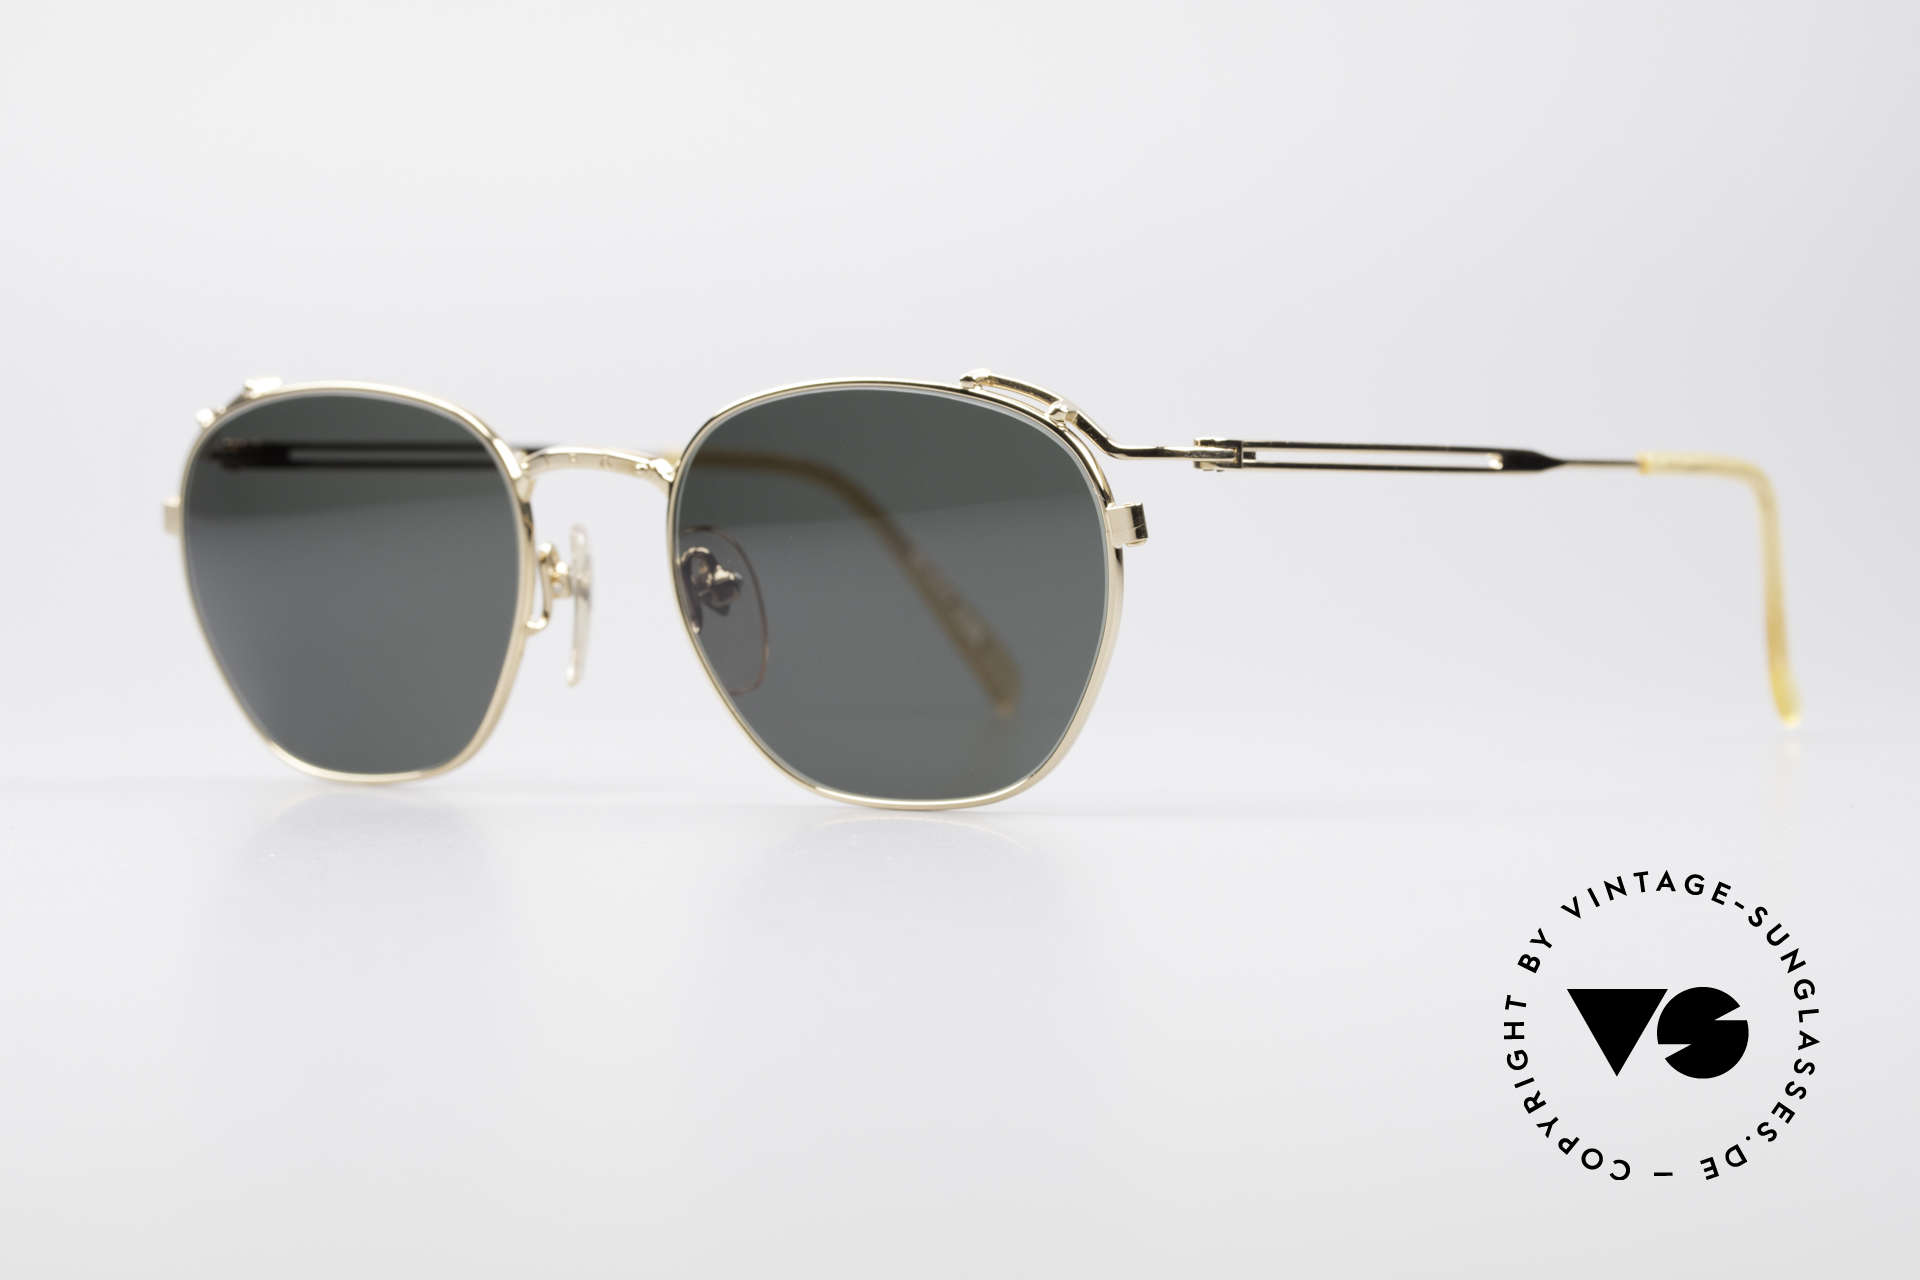 Jean Paul Gaultier 55-3173 90's Gold-Plated Sunglasses, top-notch 90's craftsmanship, 22kt gold-plated, Made for Men and Women